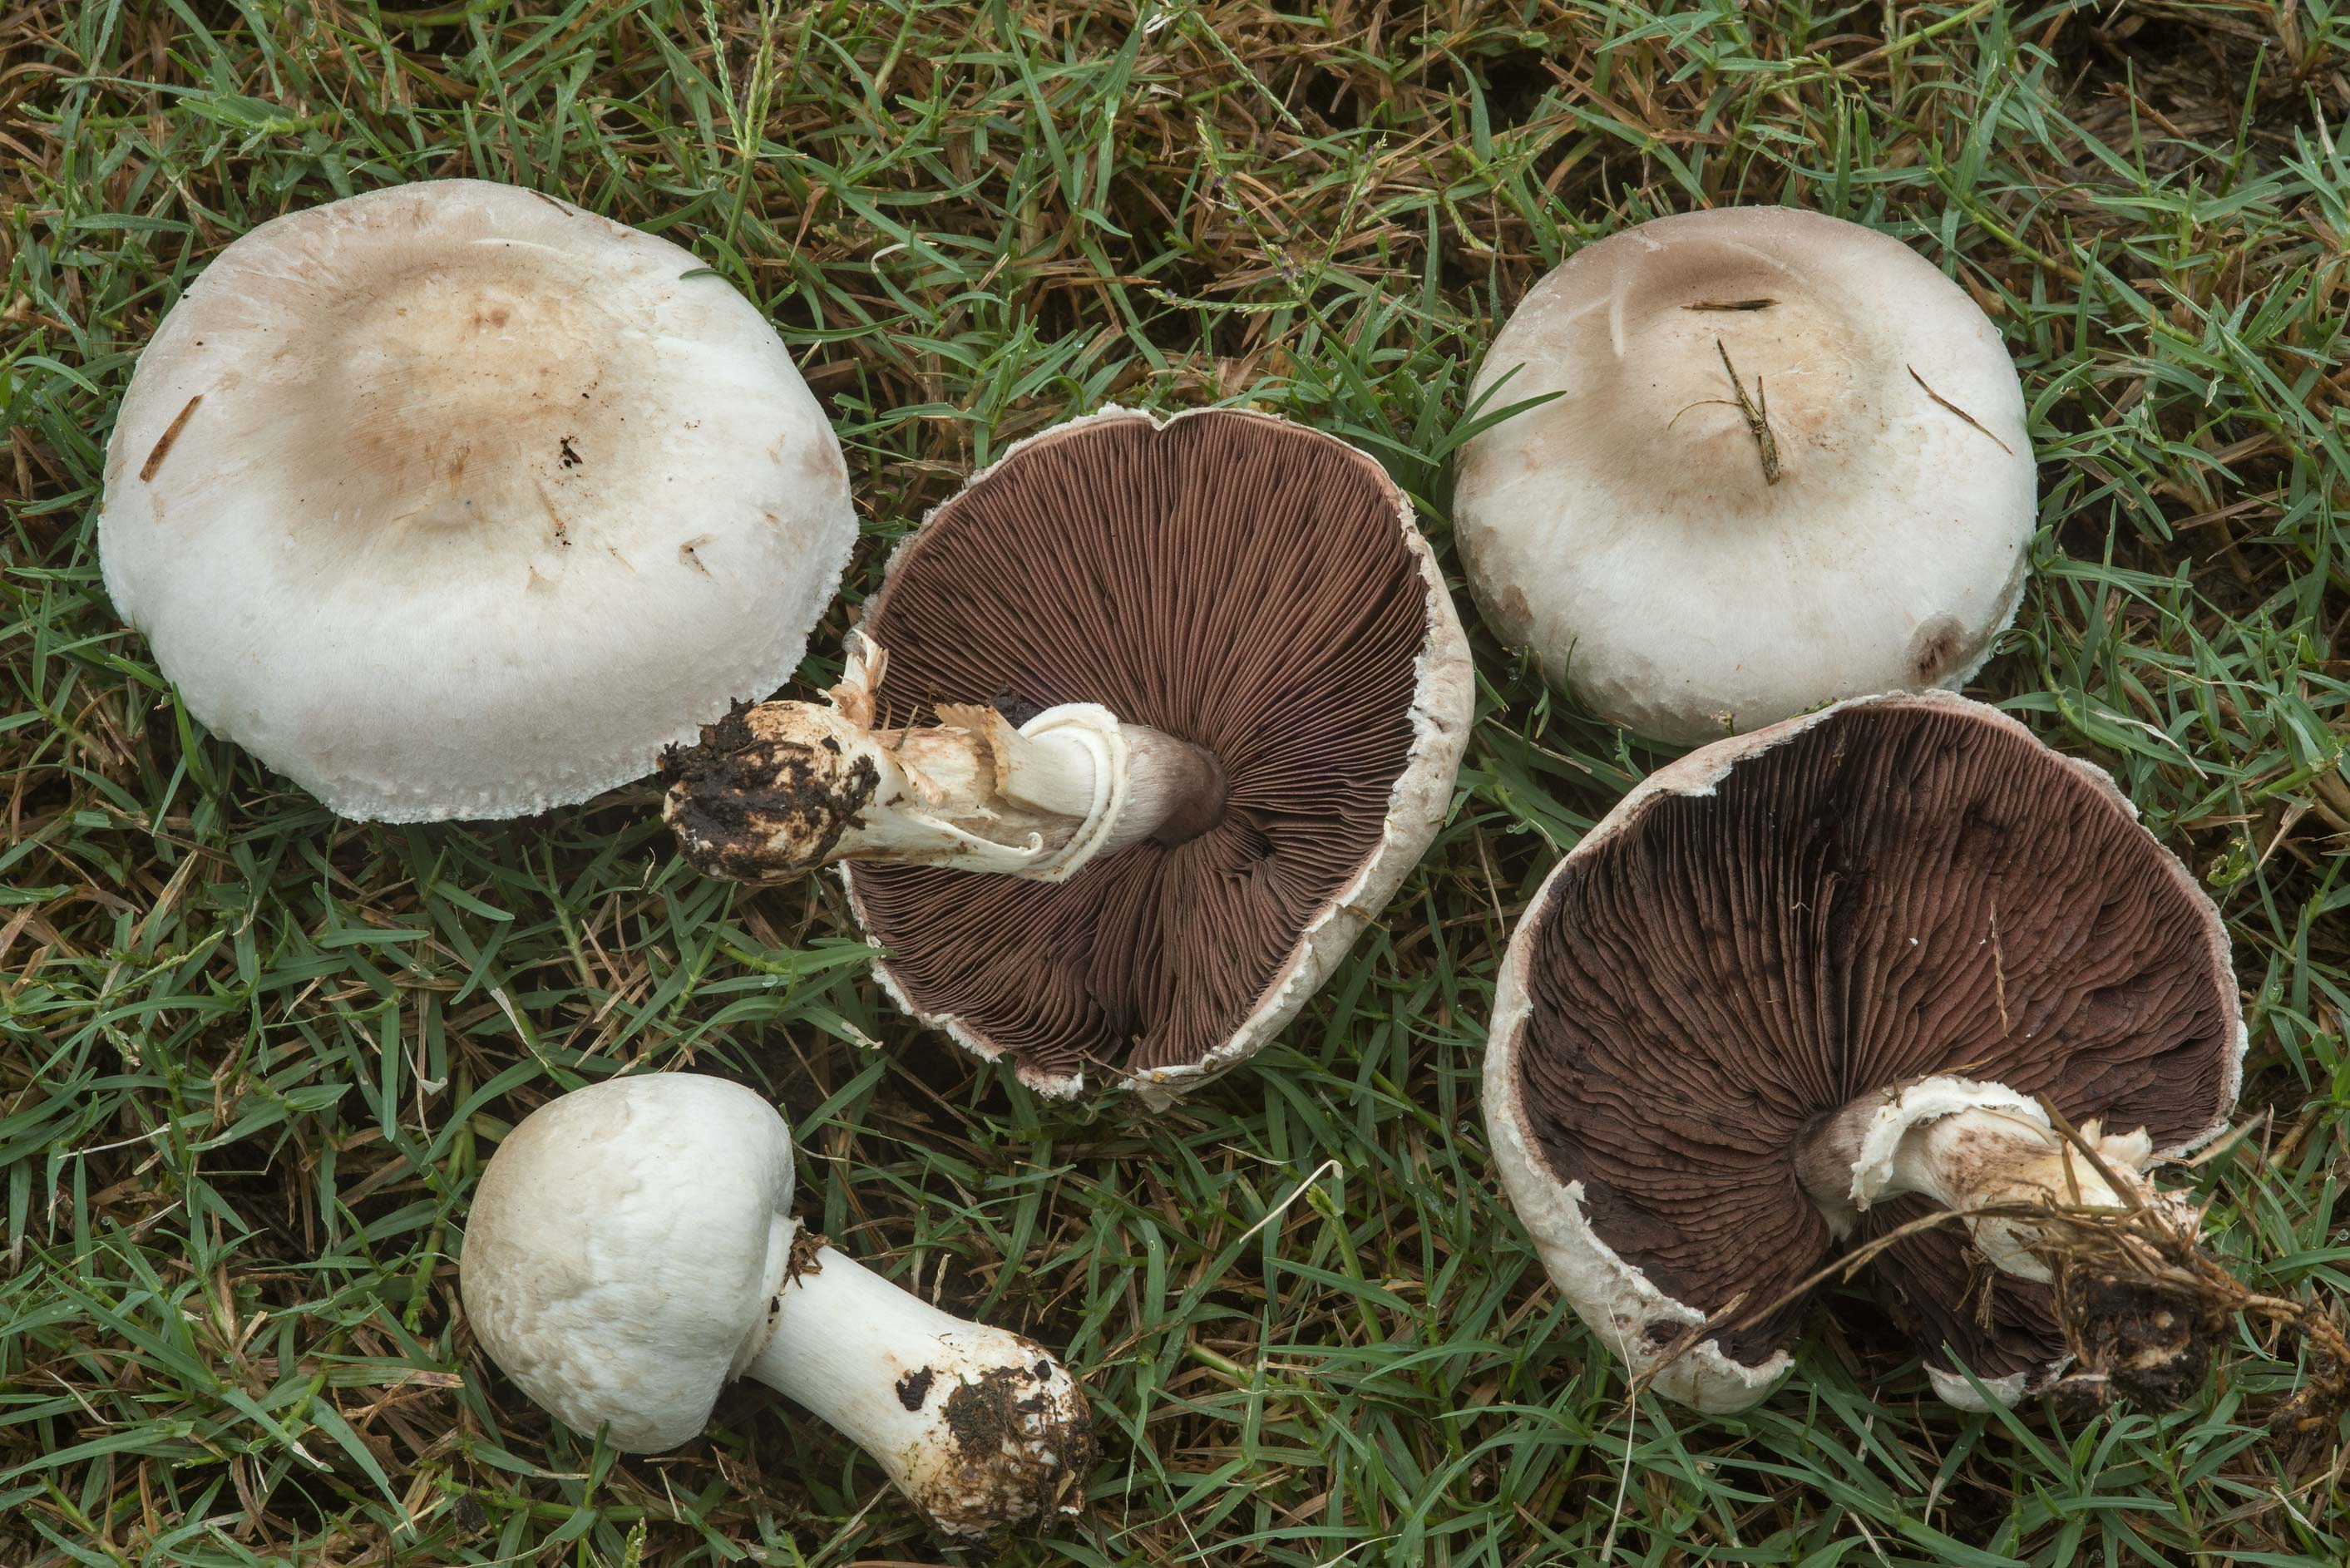 Agaricus mushrooms on gulf course of Texas A&M University. College Station, Texas